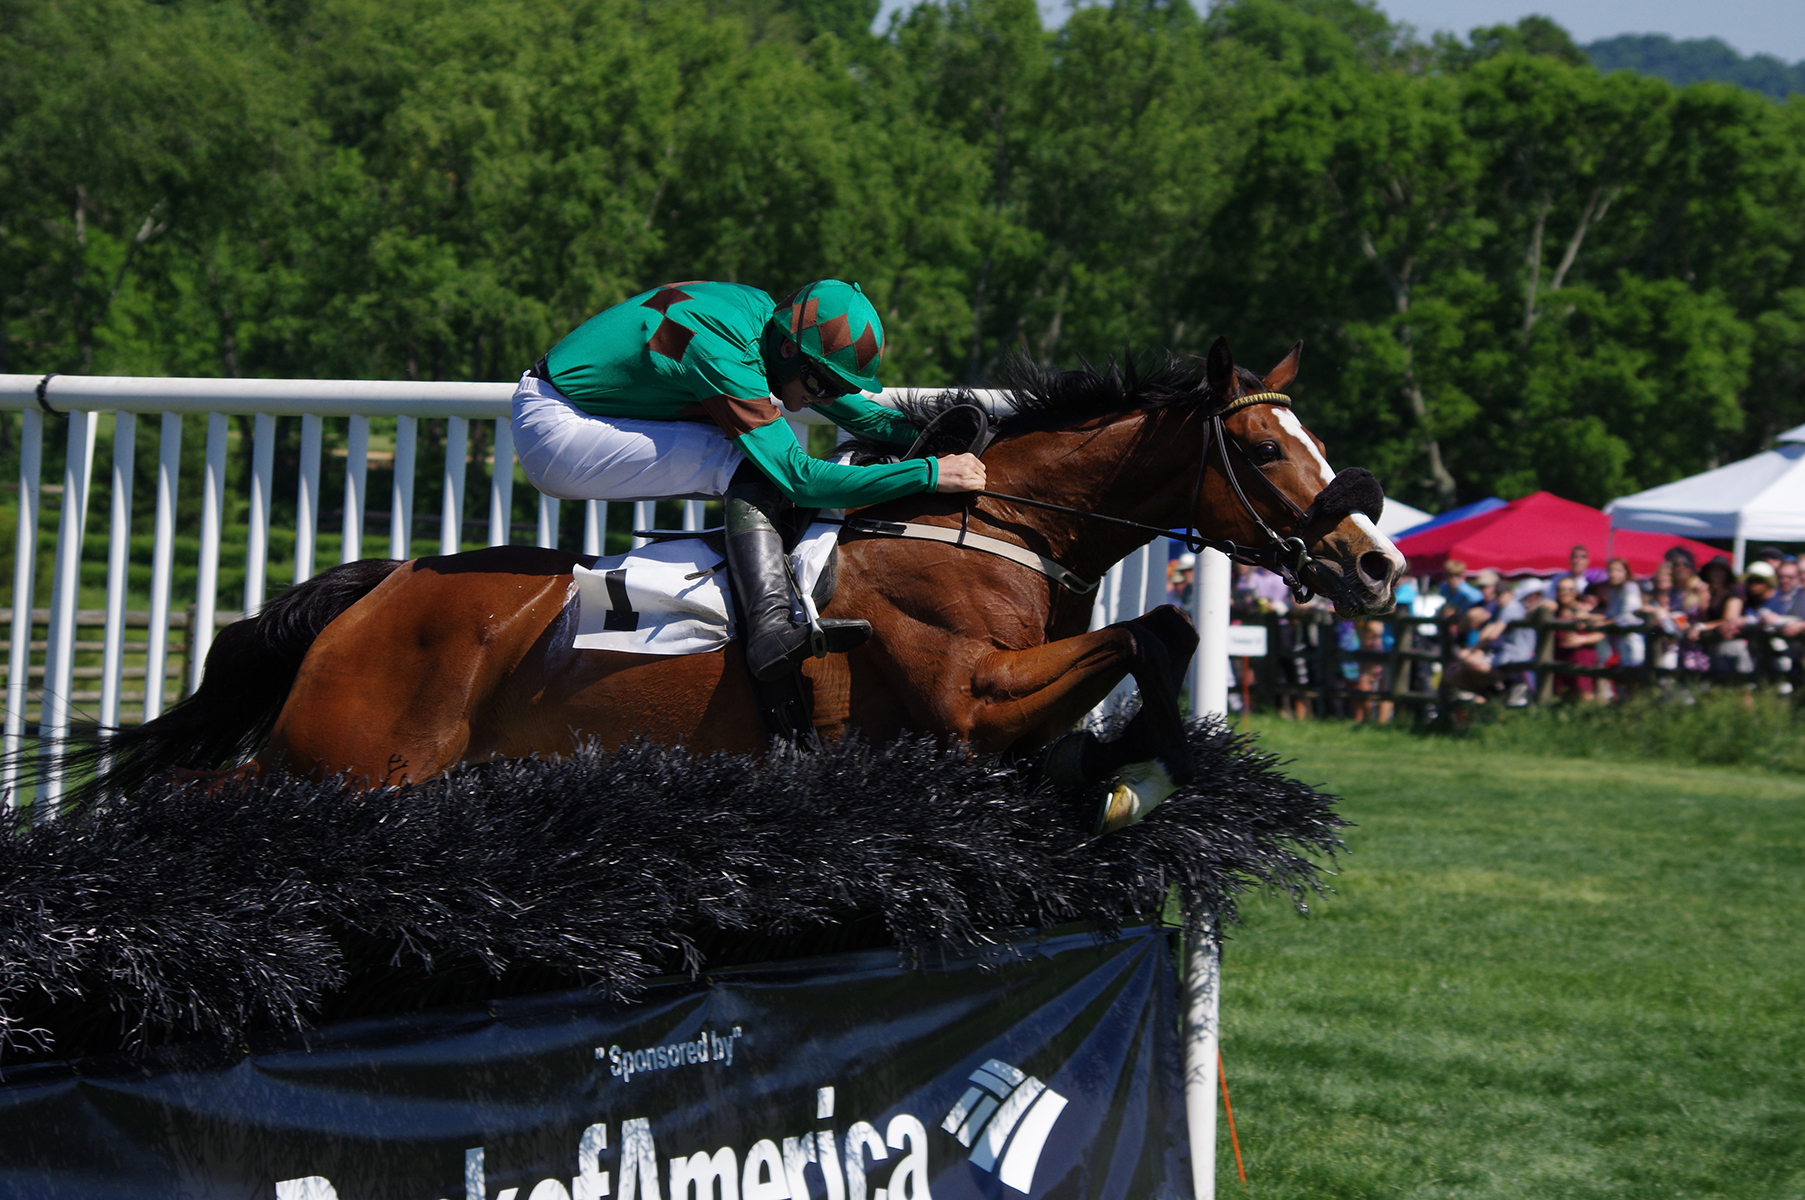 Sarah Joyce and Jack Doyle jump the last in the Margaret Currey Henley Hurdle on Iroquois Steeplechase day in Nashville, Tennessee. Photo: Meghan Janusz